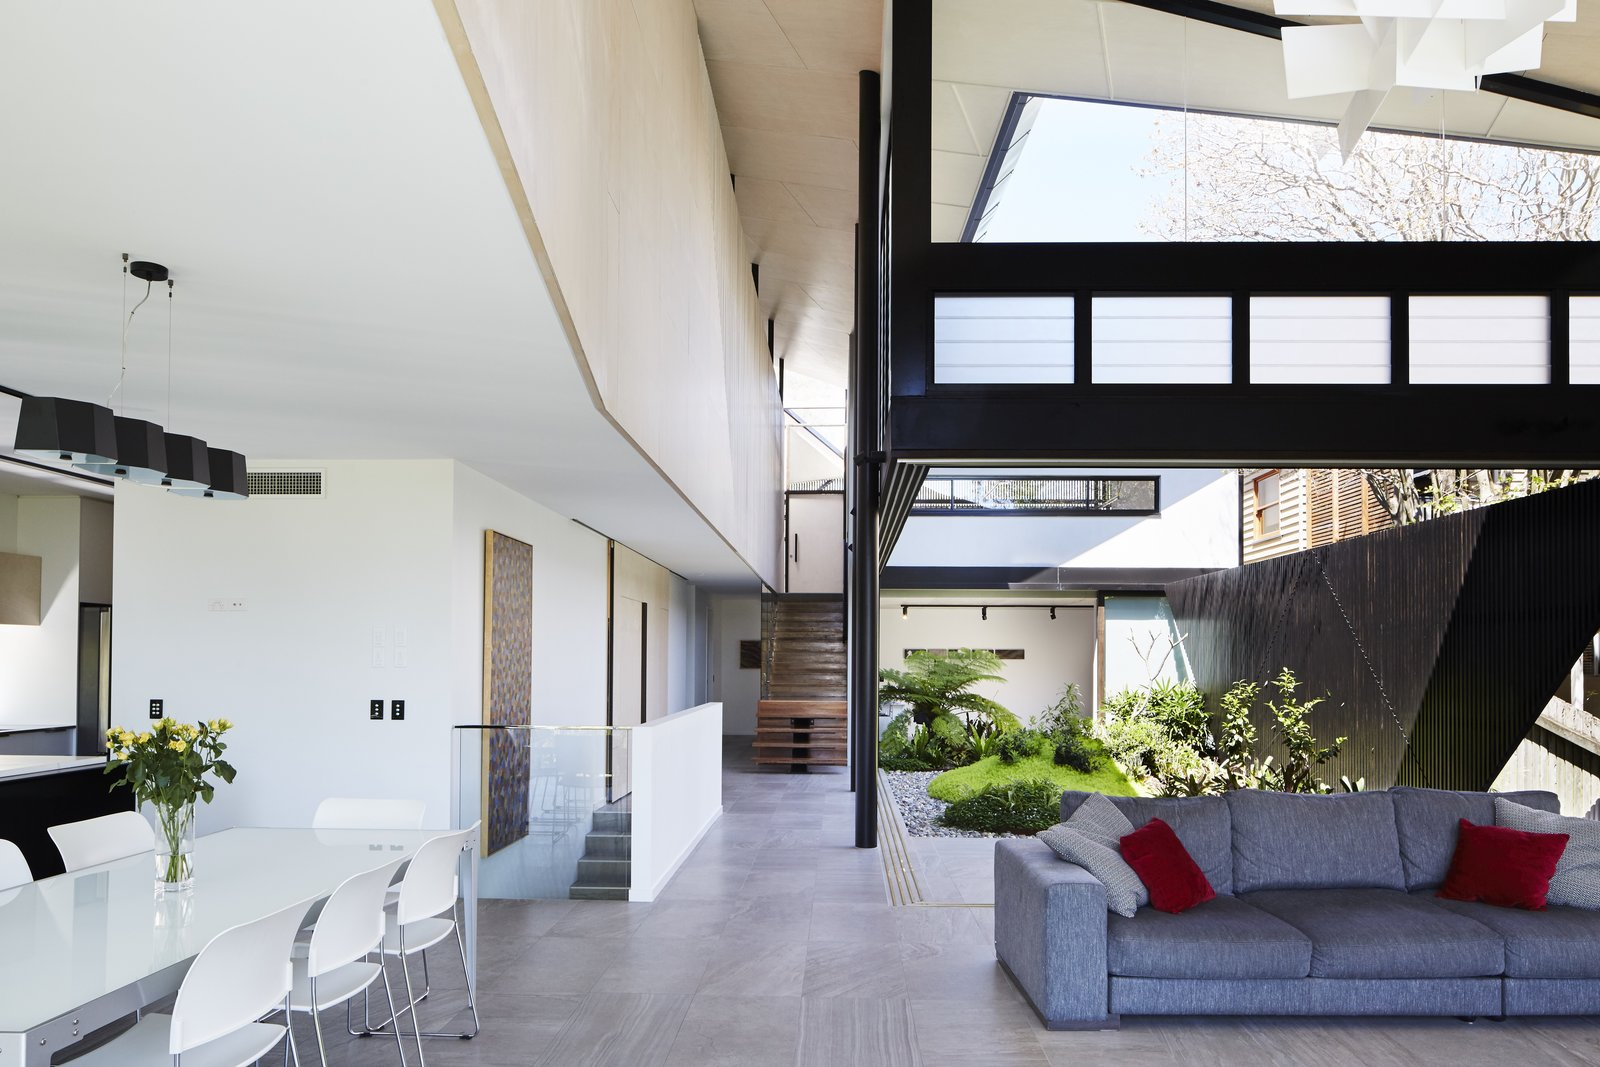 Living Room, Sofa, Chair, Table, and Pendant Lighting  Photo 12 of 12 in An Edgy Slatted Facade Conceals a Striking Indoor/Outdoor Home in Brisbane